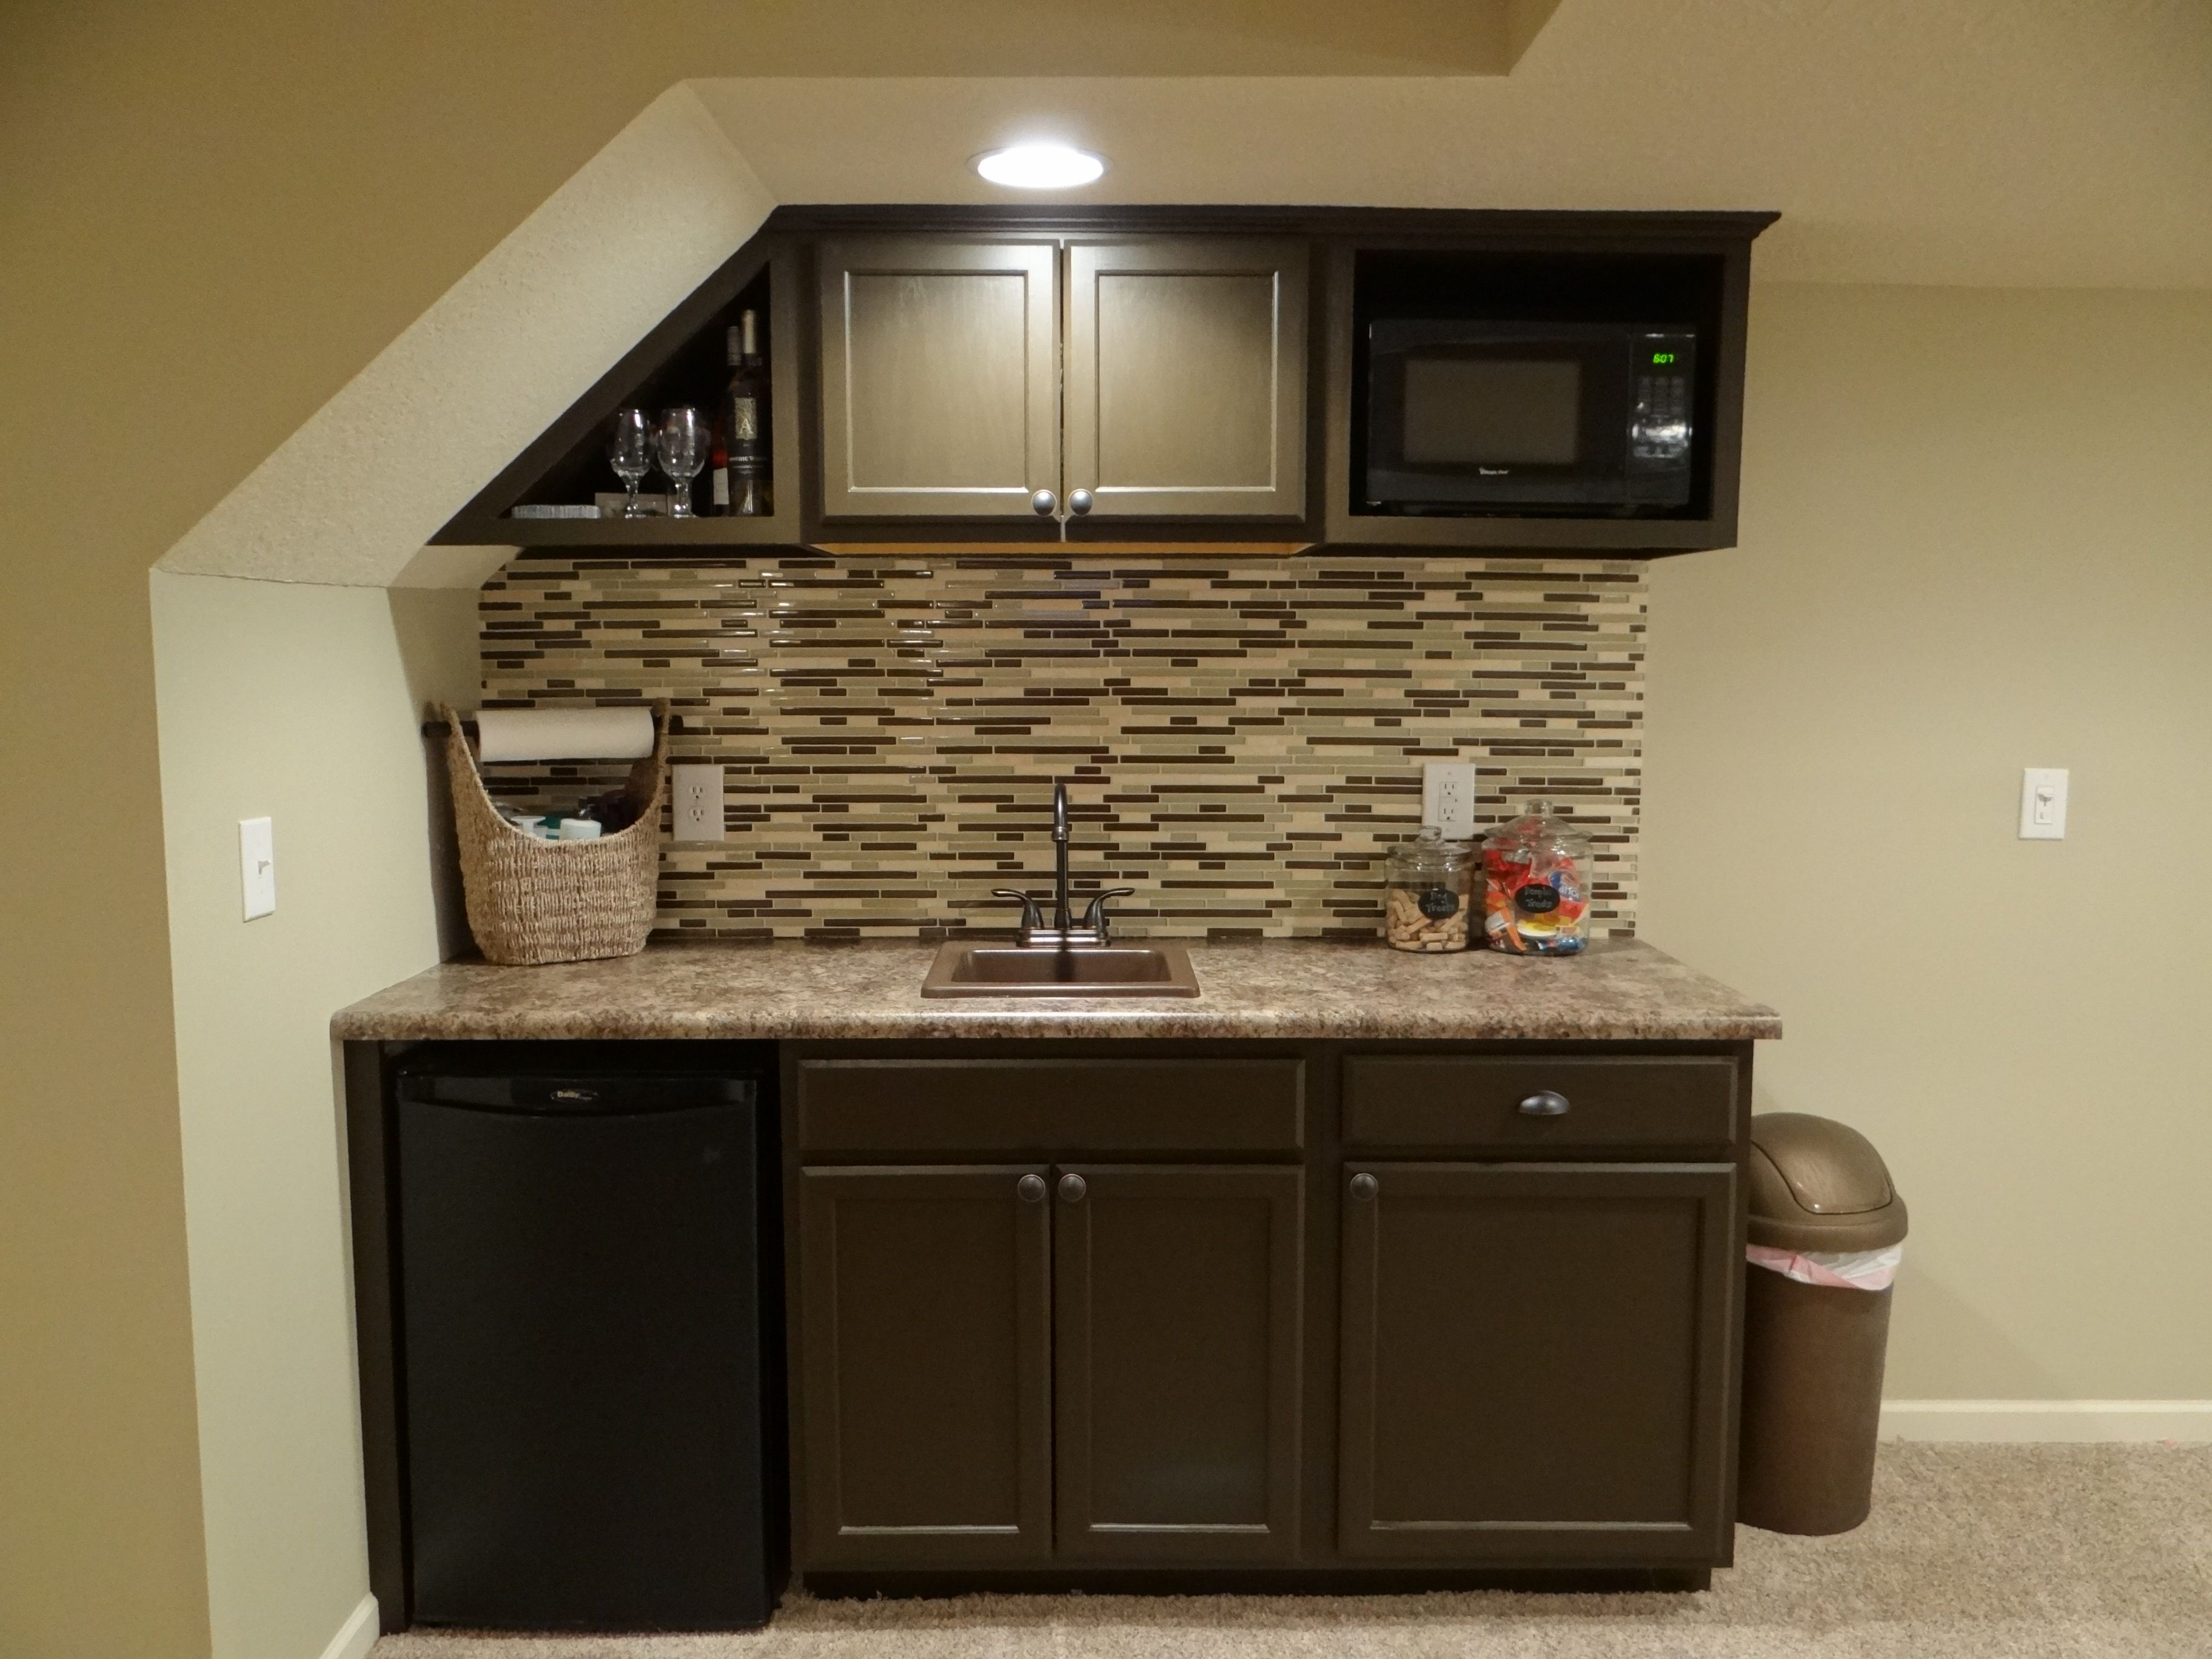 Lowes Kitchen Cabinets In Stock Moen Chateau Faucet Repair Basement Wet Bar Under Stairs - Used And ...